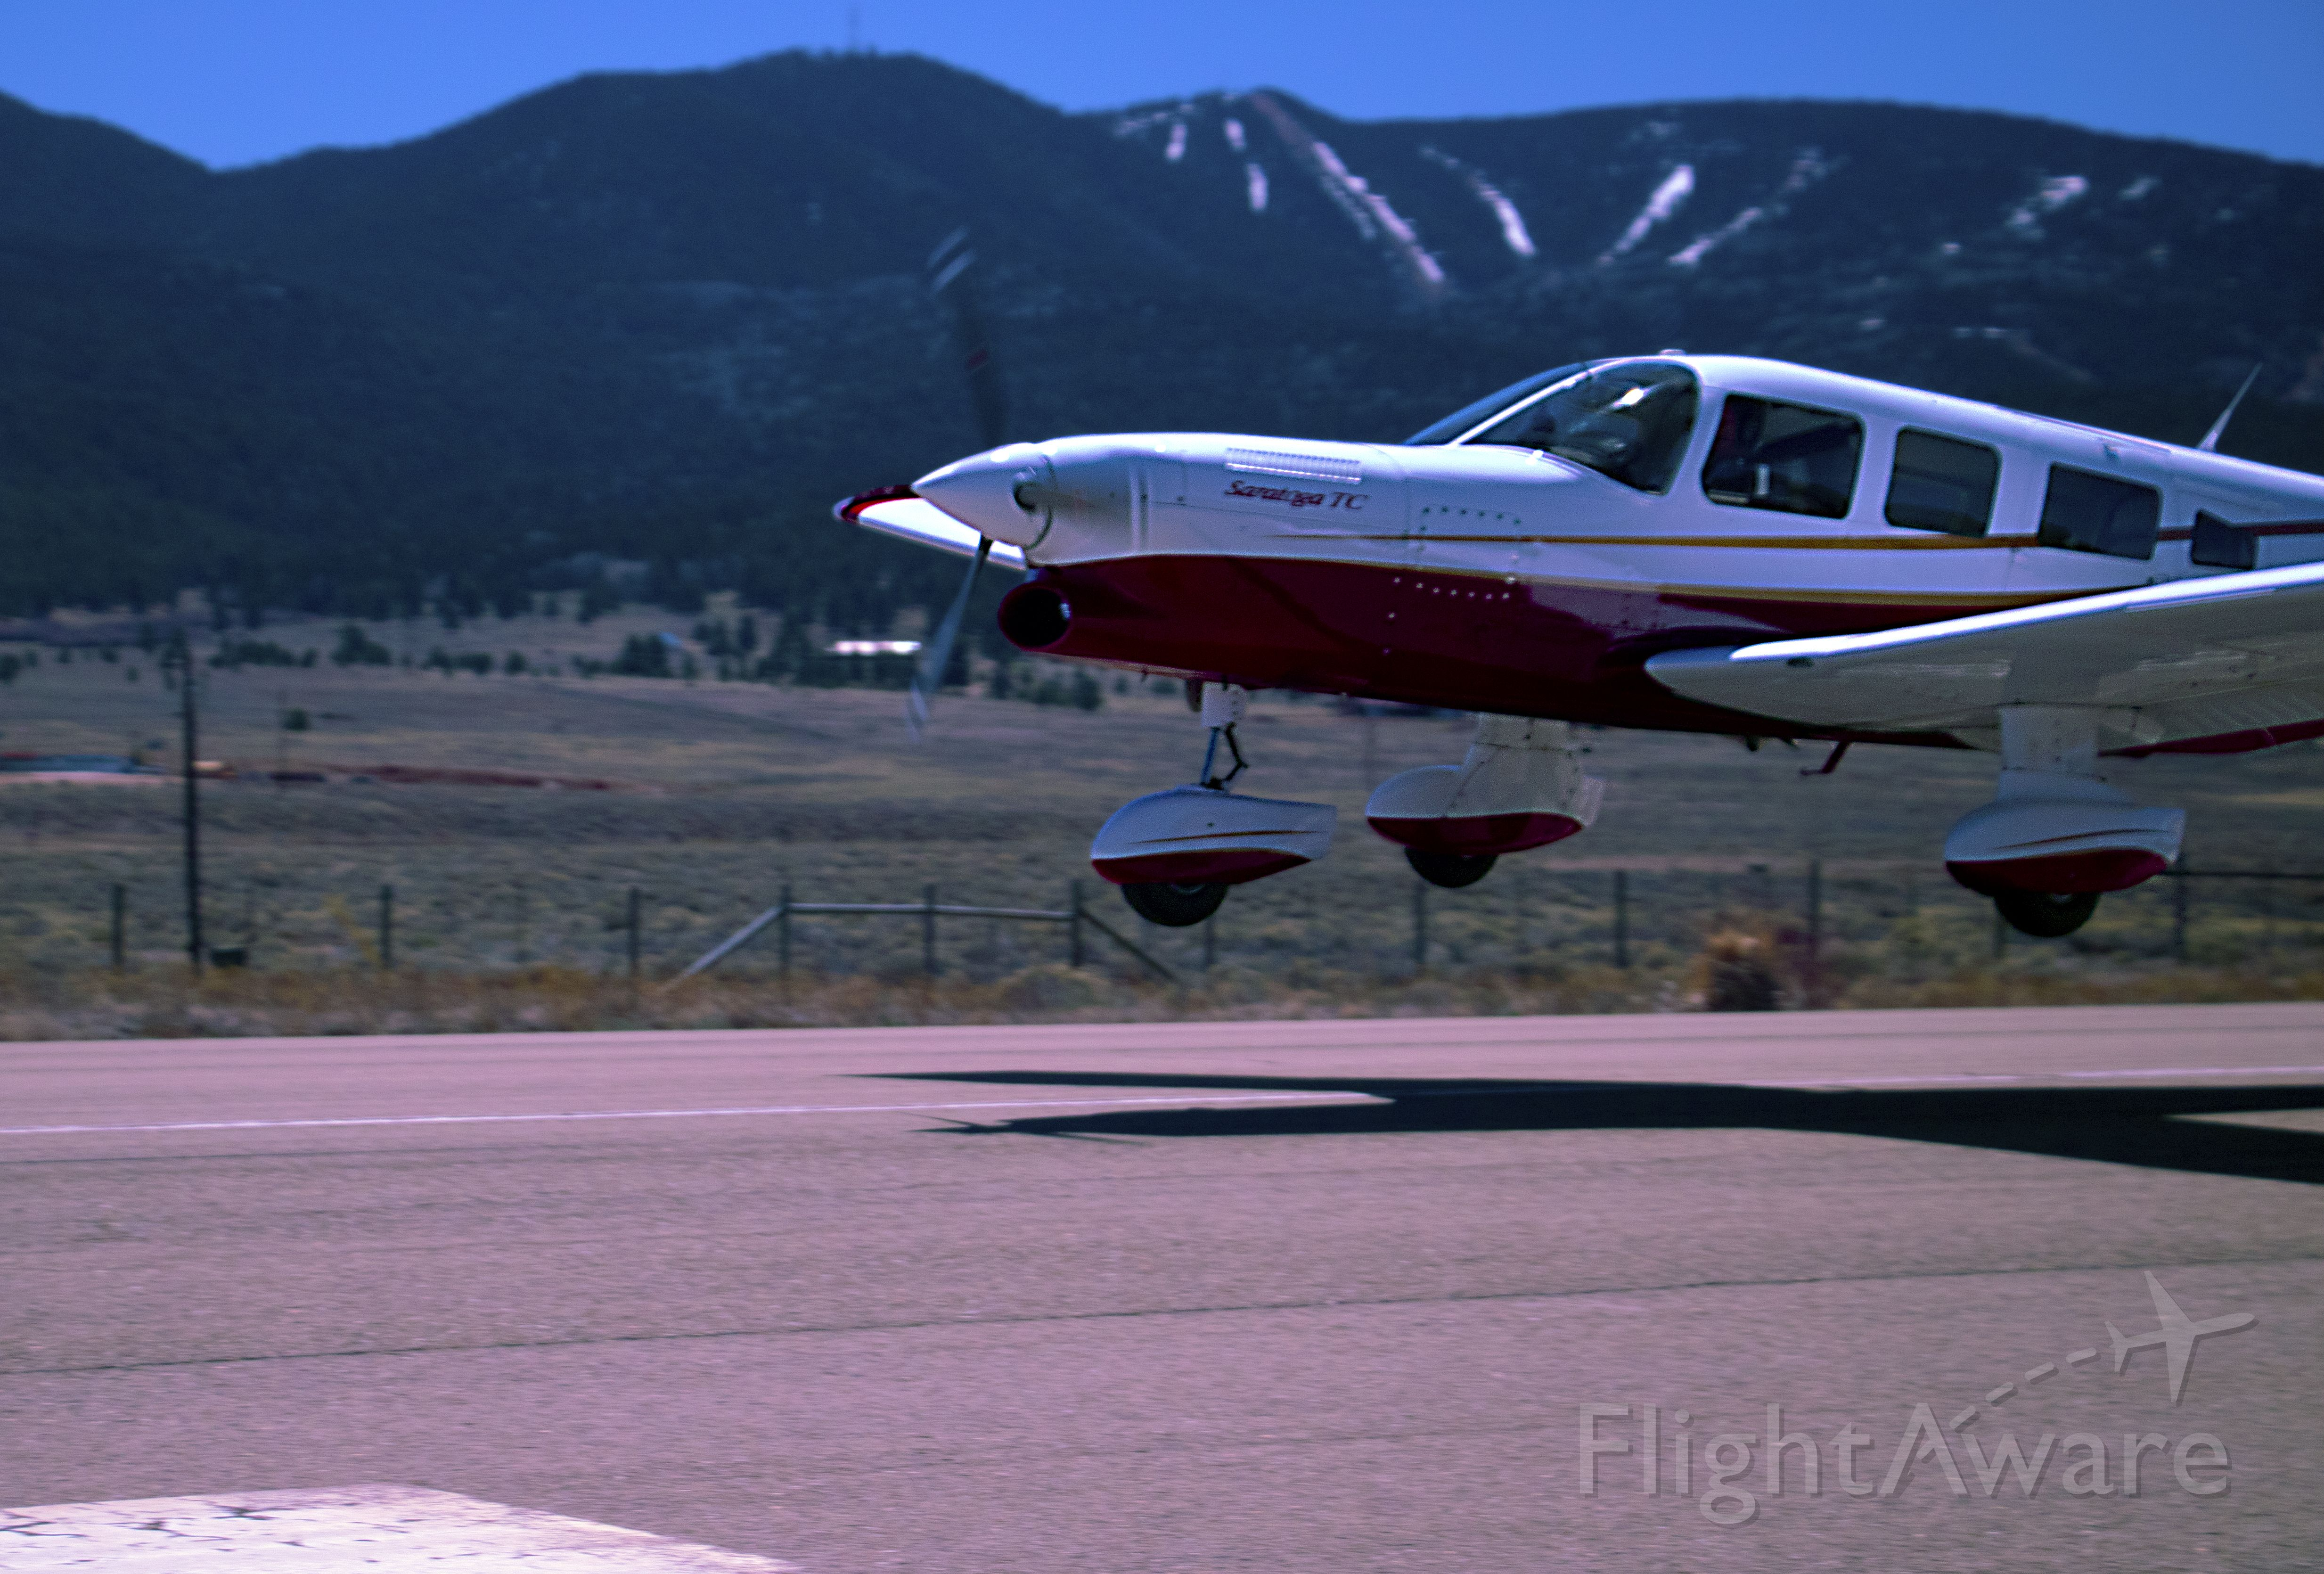 Piper Saratoga (N624DP) - Saratoga N624DP about to land in Angel Fire, New Mexico - 4th highest airport in the U.S. at 8,380 ft MSL